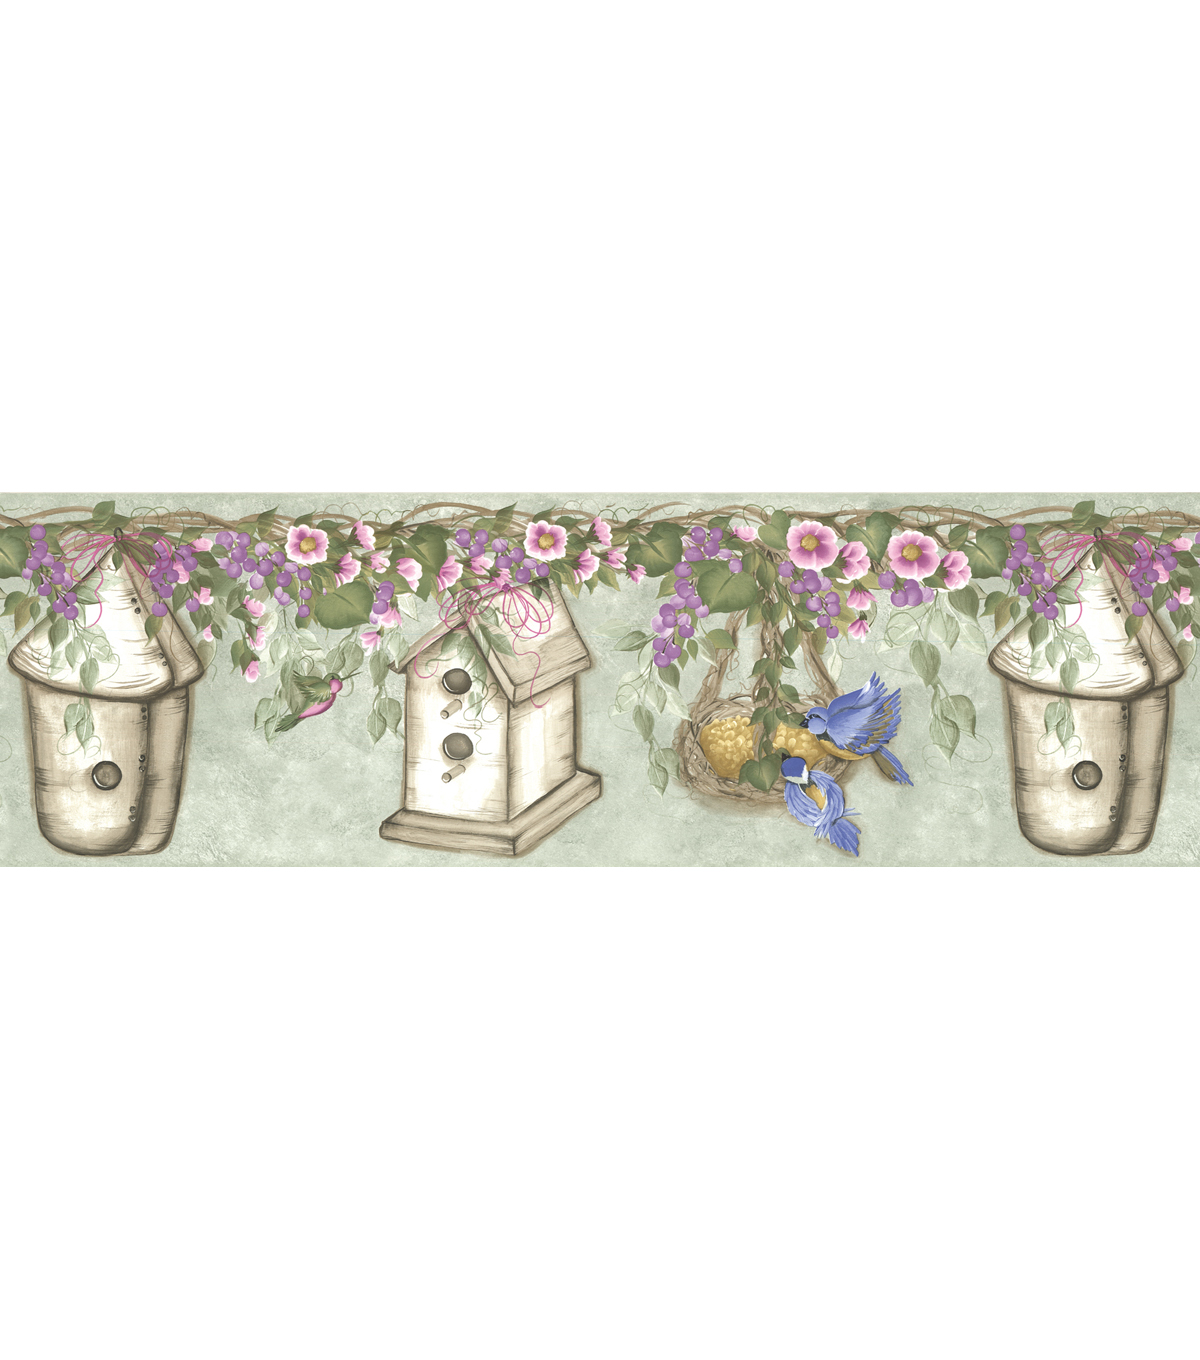 Whimsical Bird House Floral Wallpaper Border, Green Sample